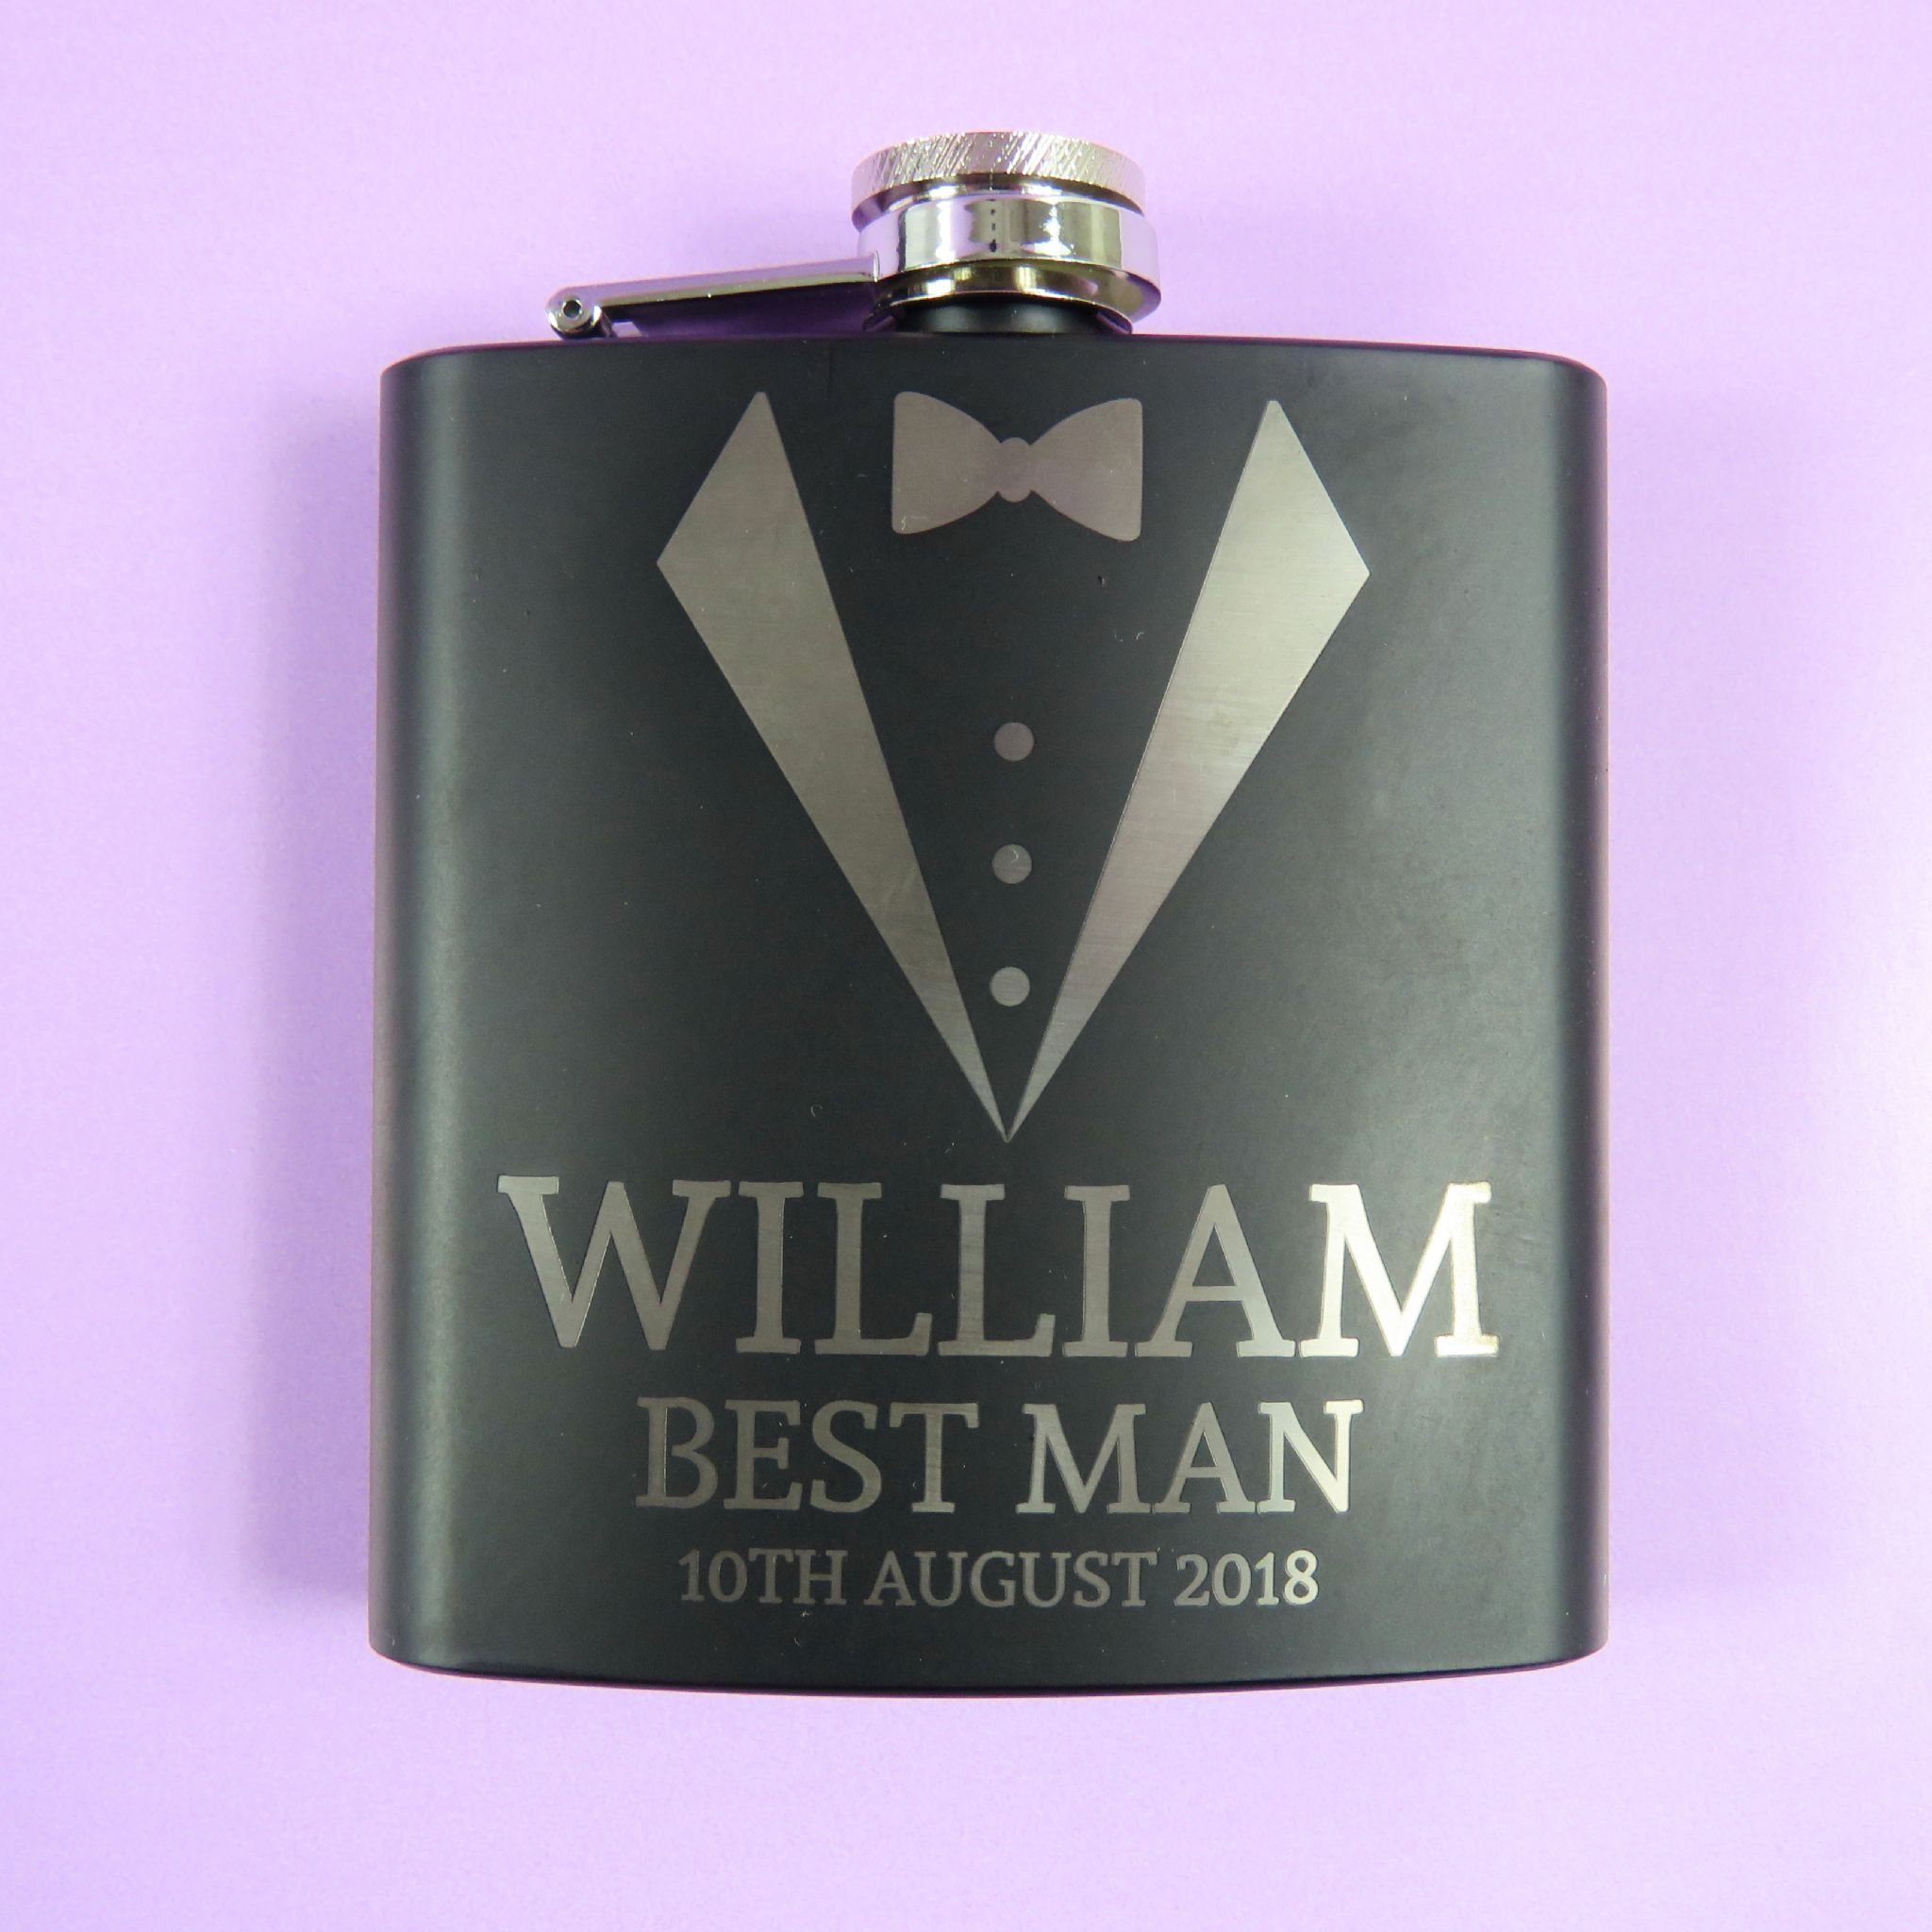 Wedding Gifts Best Man: Best Man Personalised Engraved Hip Flask Wedding Thank You